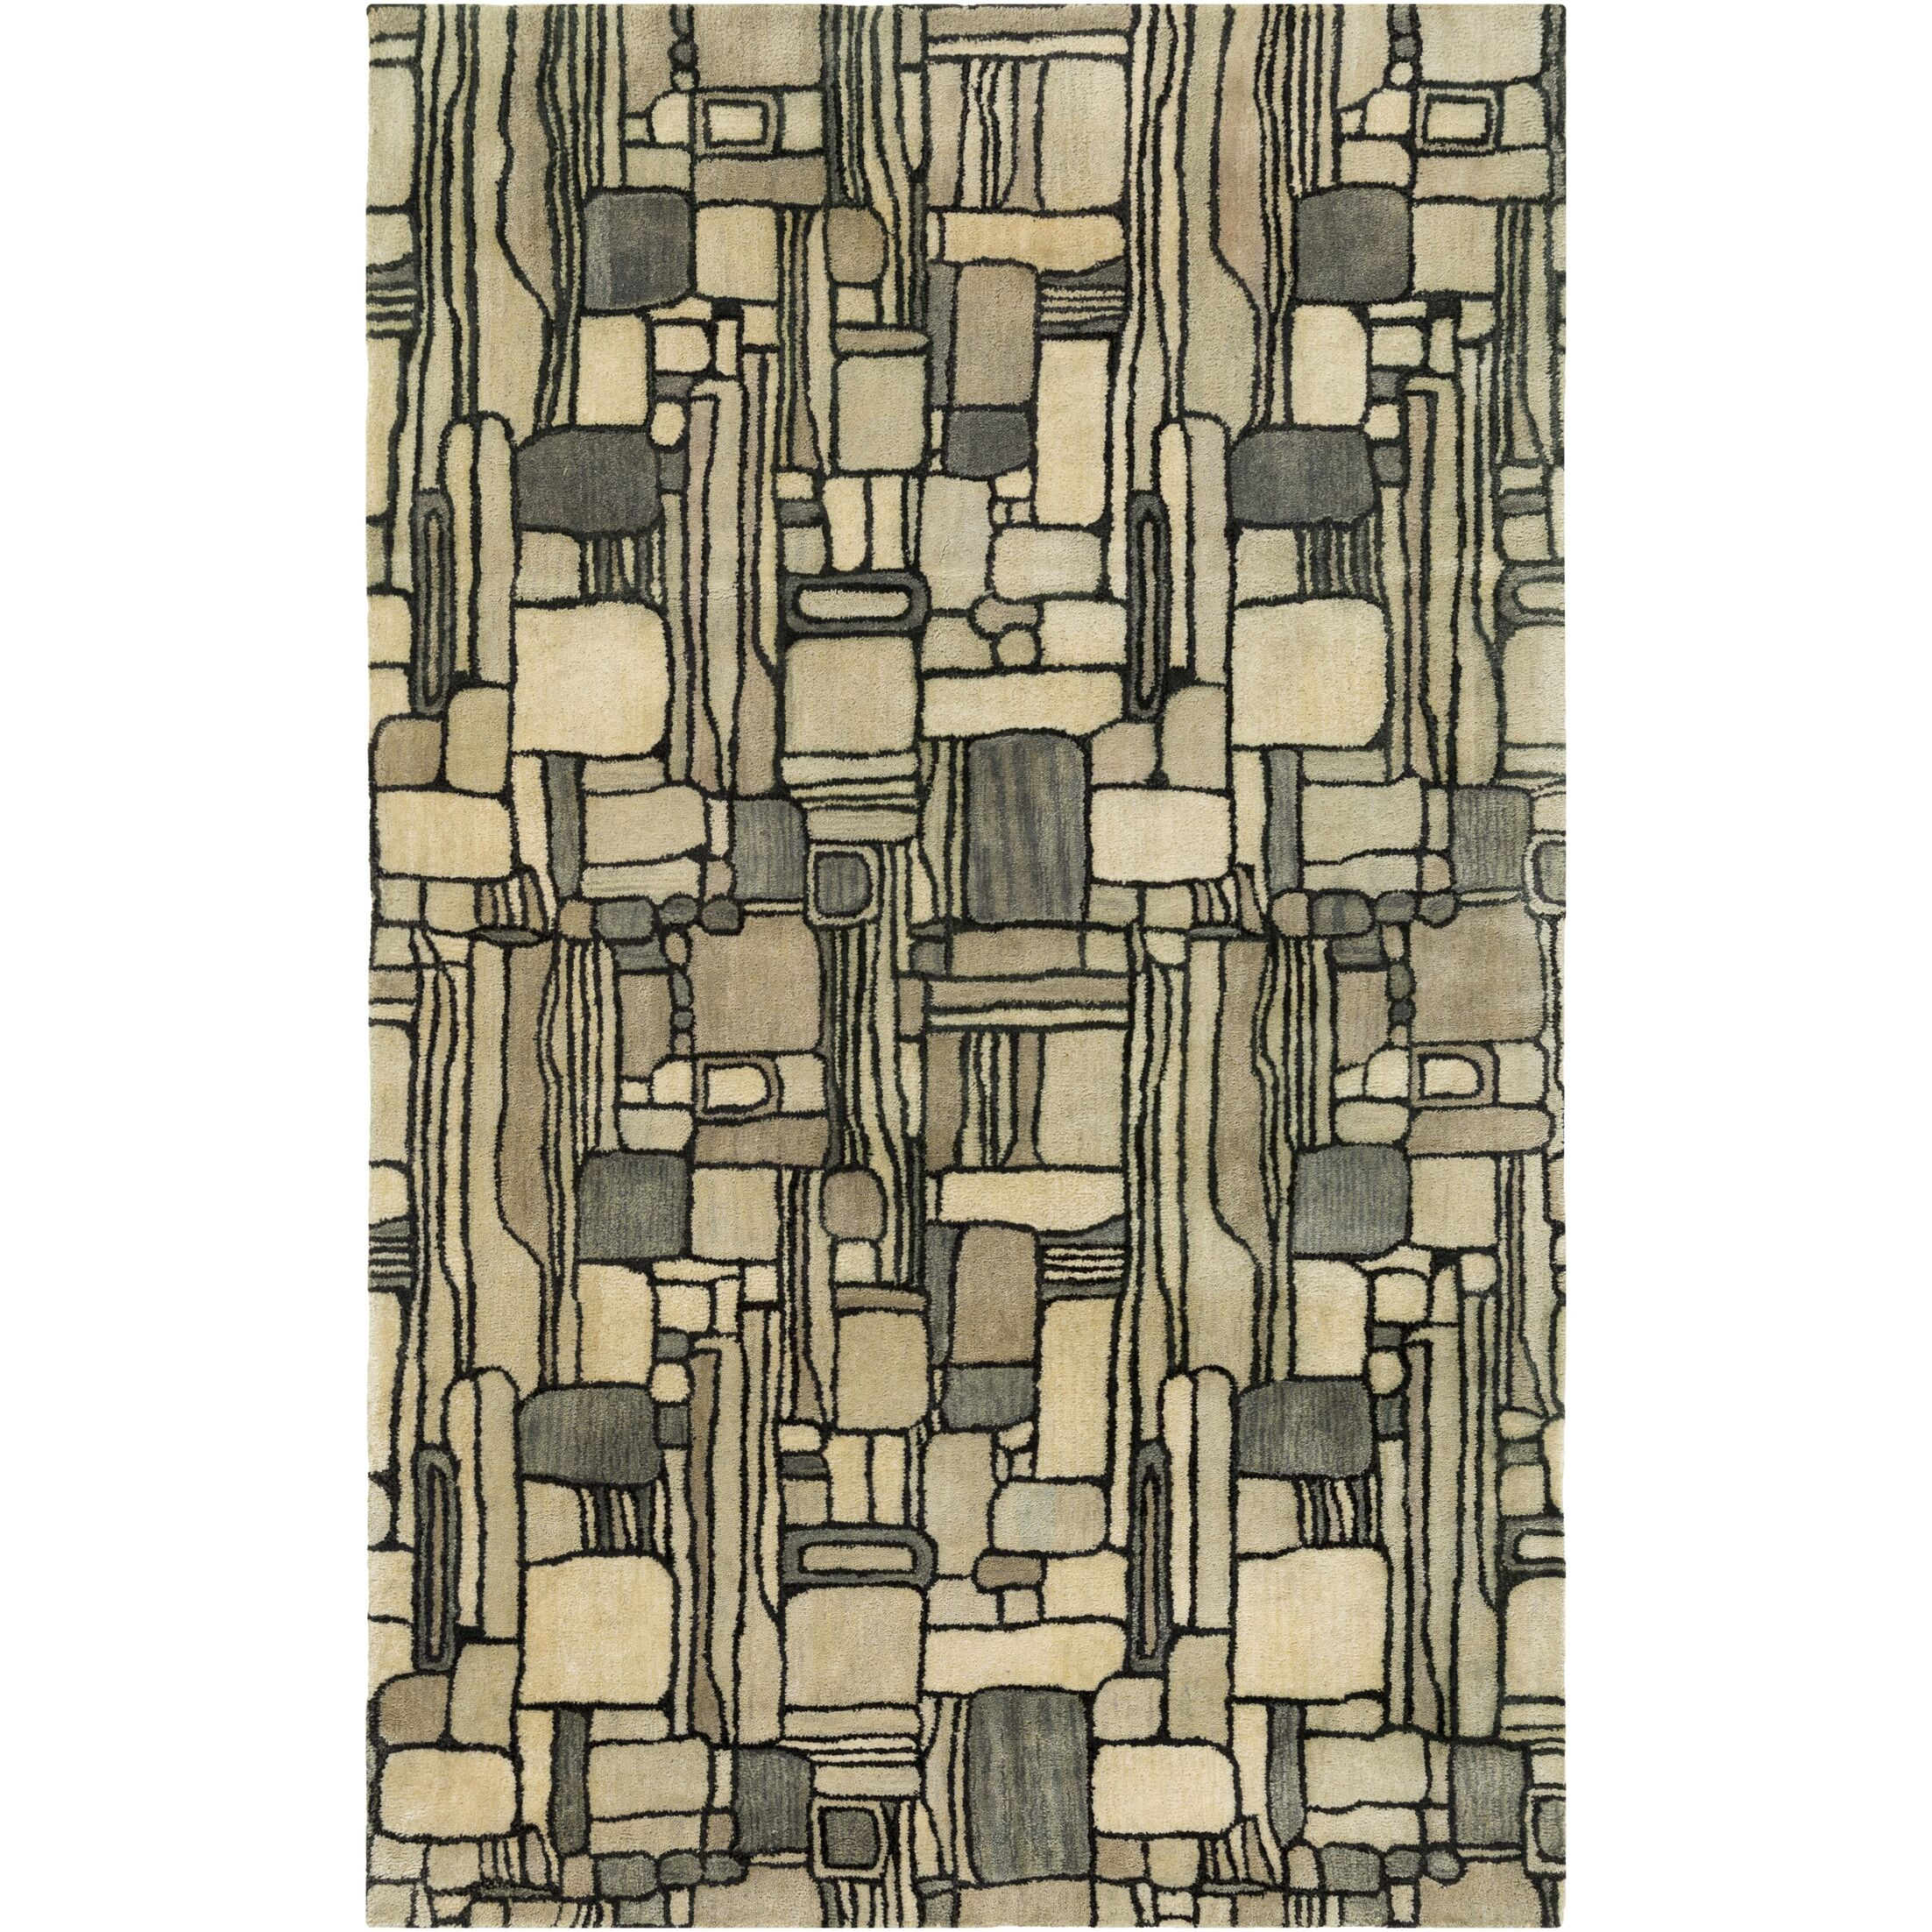 Natural Affinity Hand-Tufted Yellow/Gray Area Rug Rug Size: Rectangle 2' x 3'